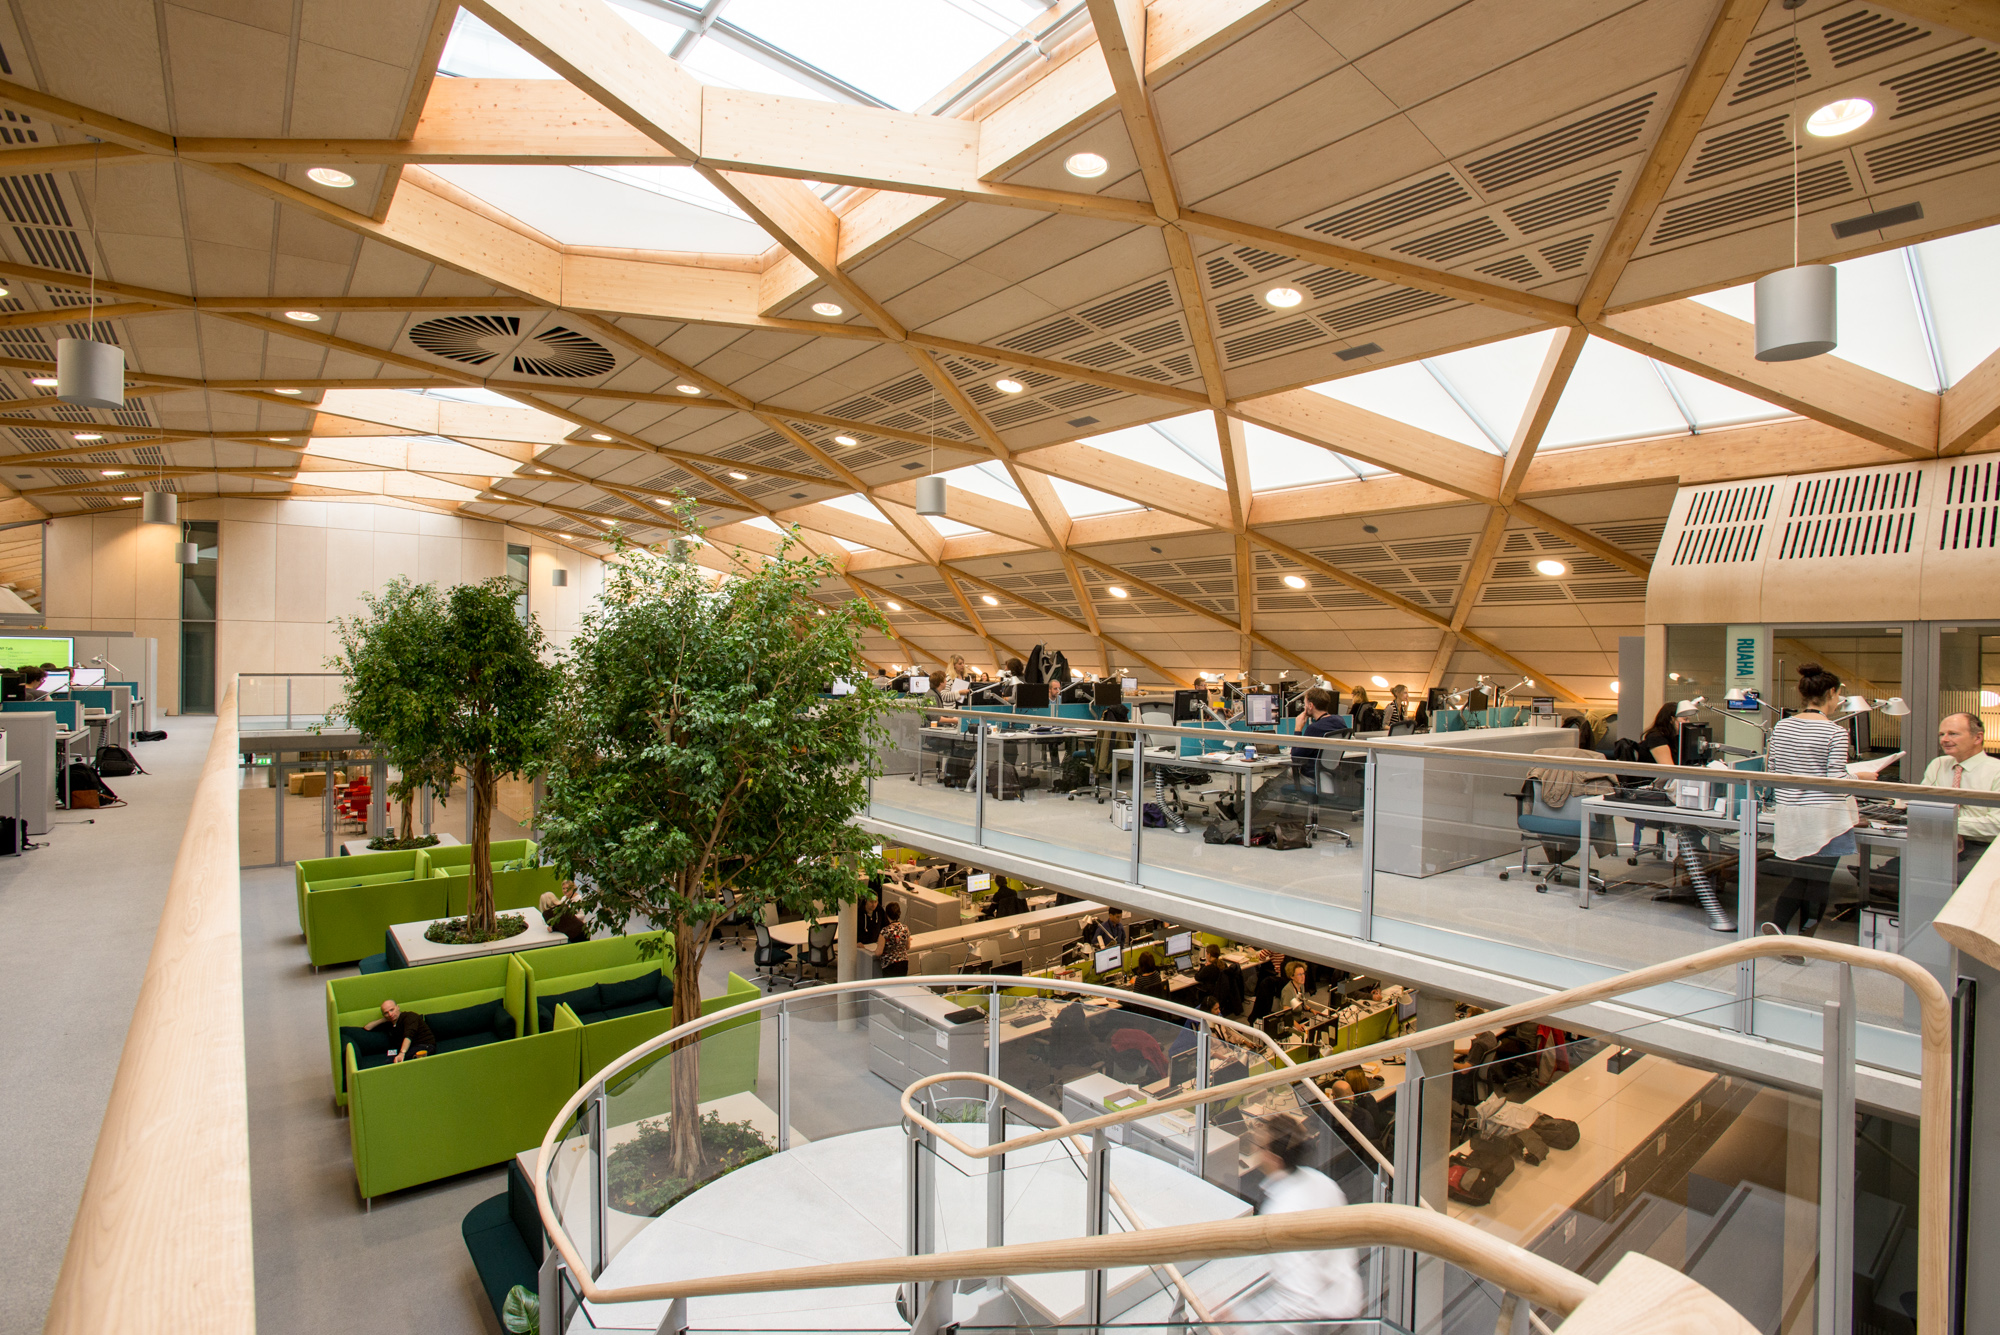 WWF UK HQ, Woking with architectural and interior photography by Richard Stonehouse ,architectural photographer.